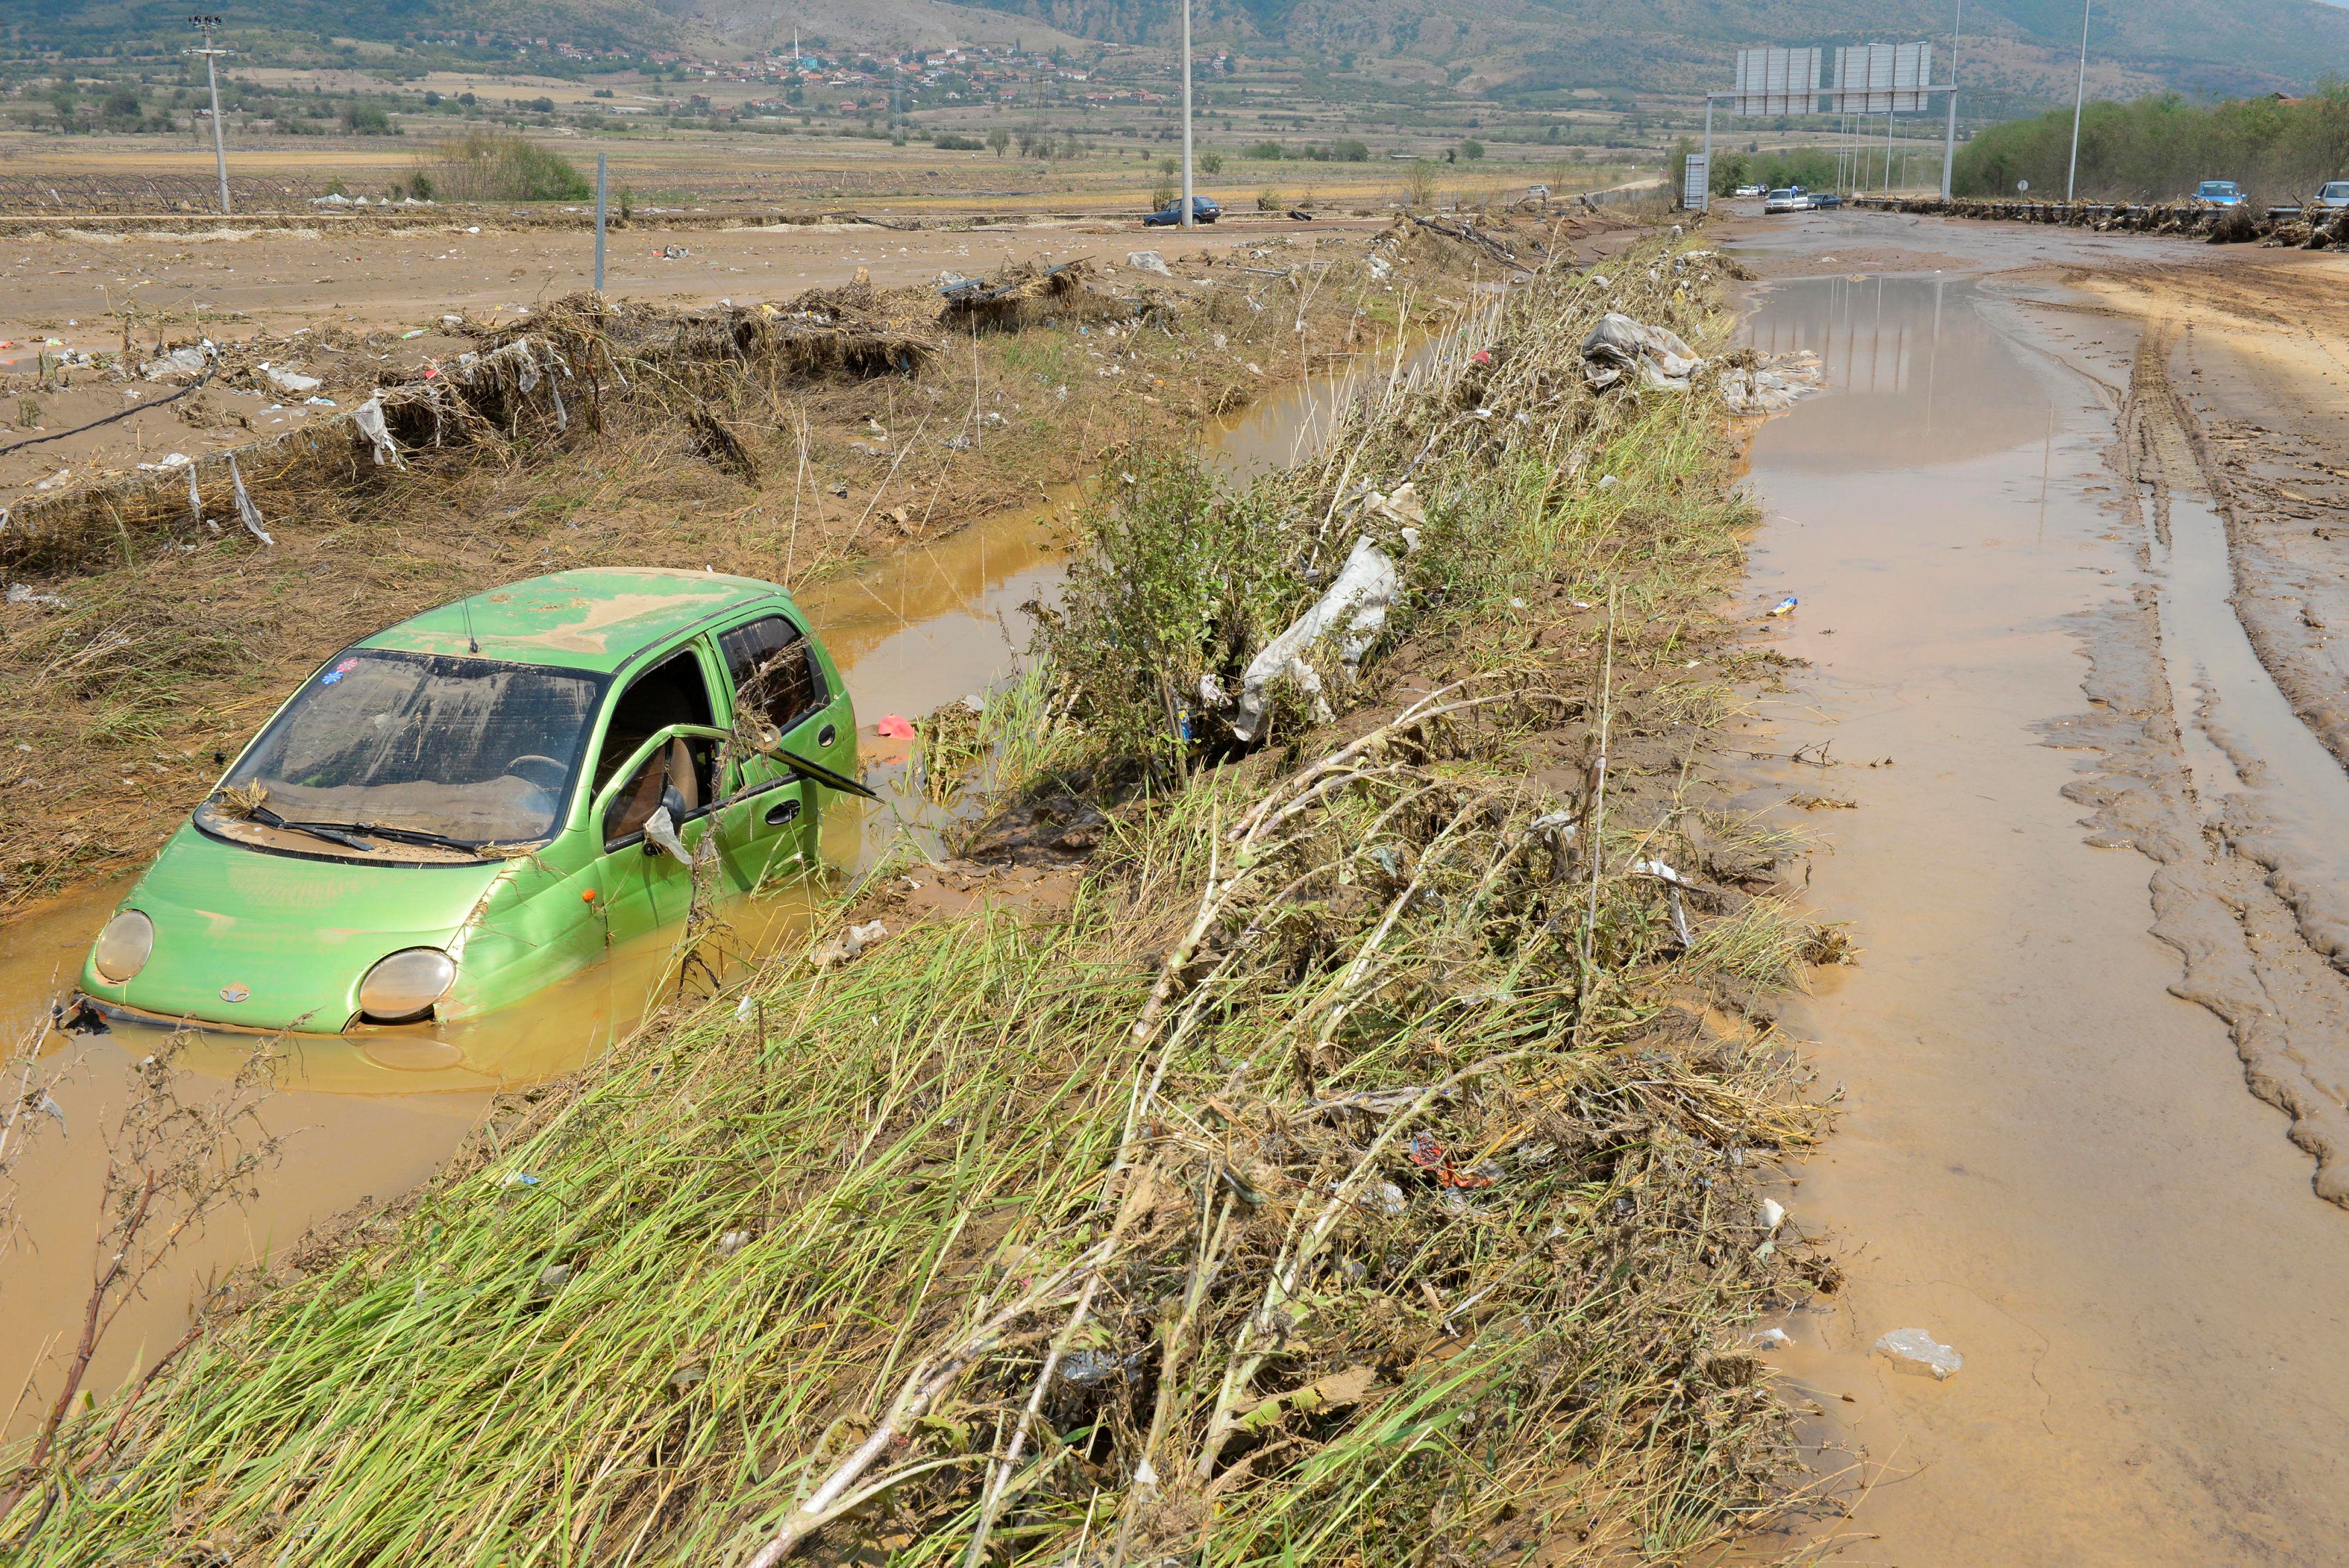 A wrecked car is seen after heavy floods in Cento